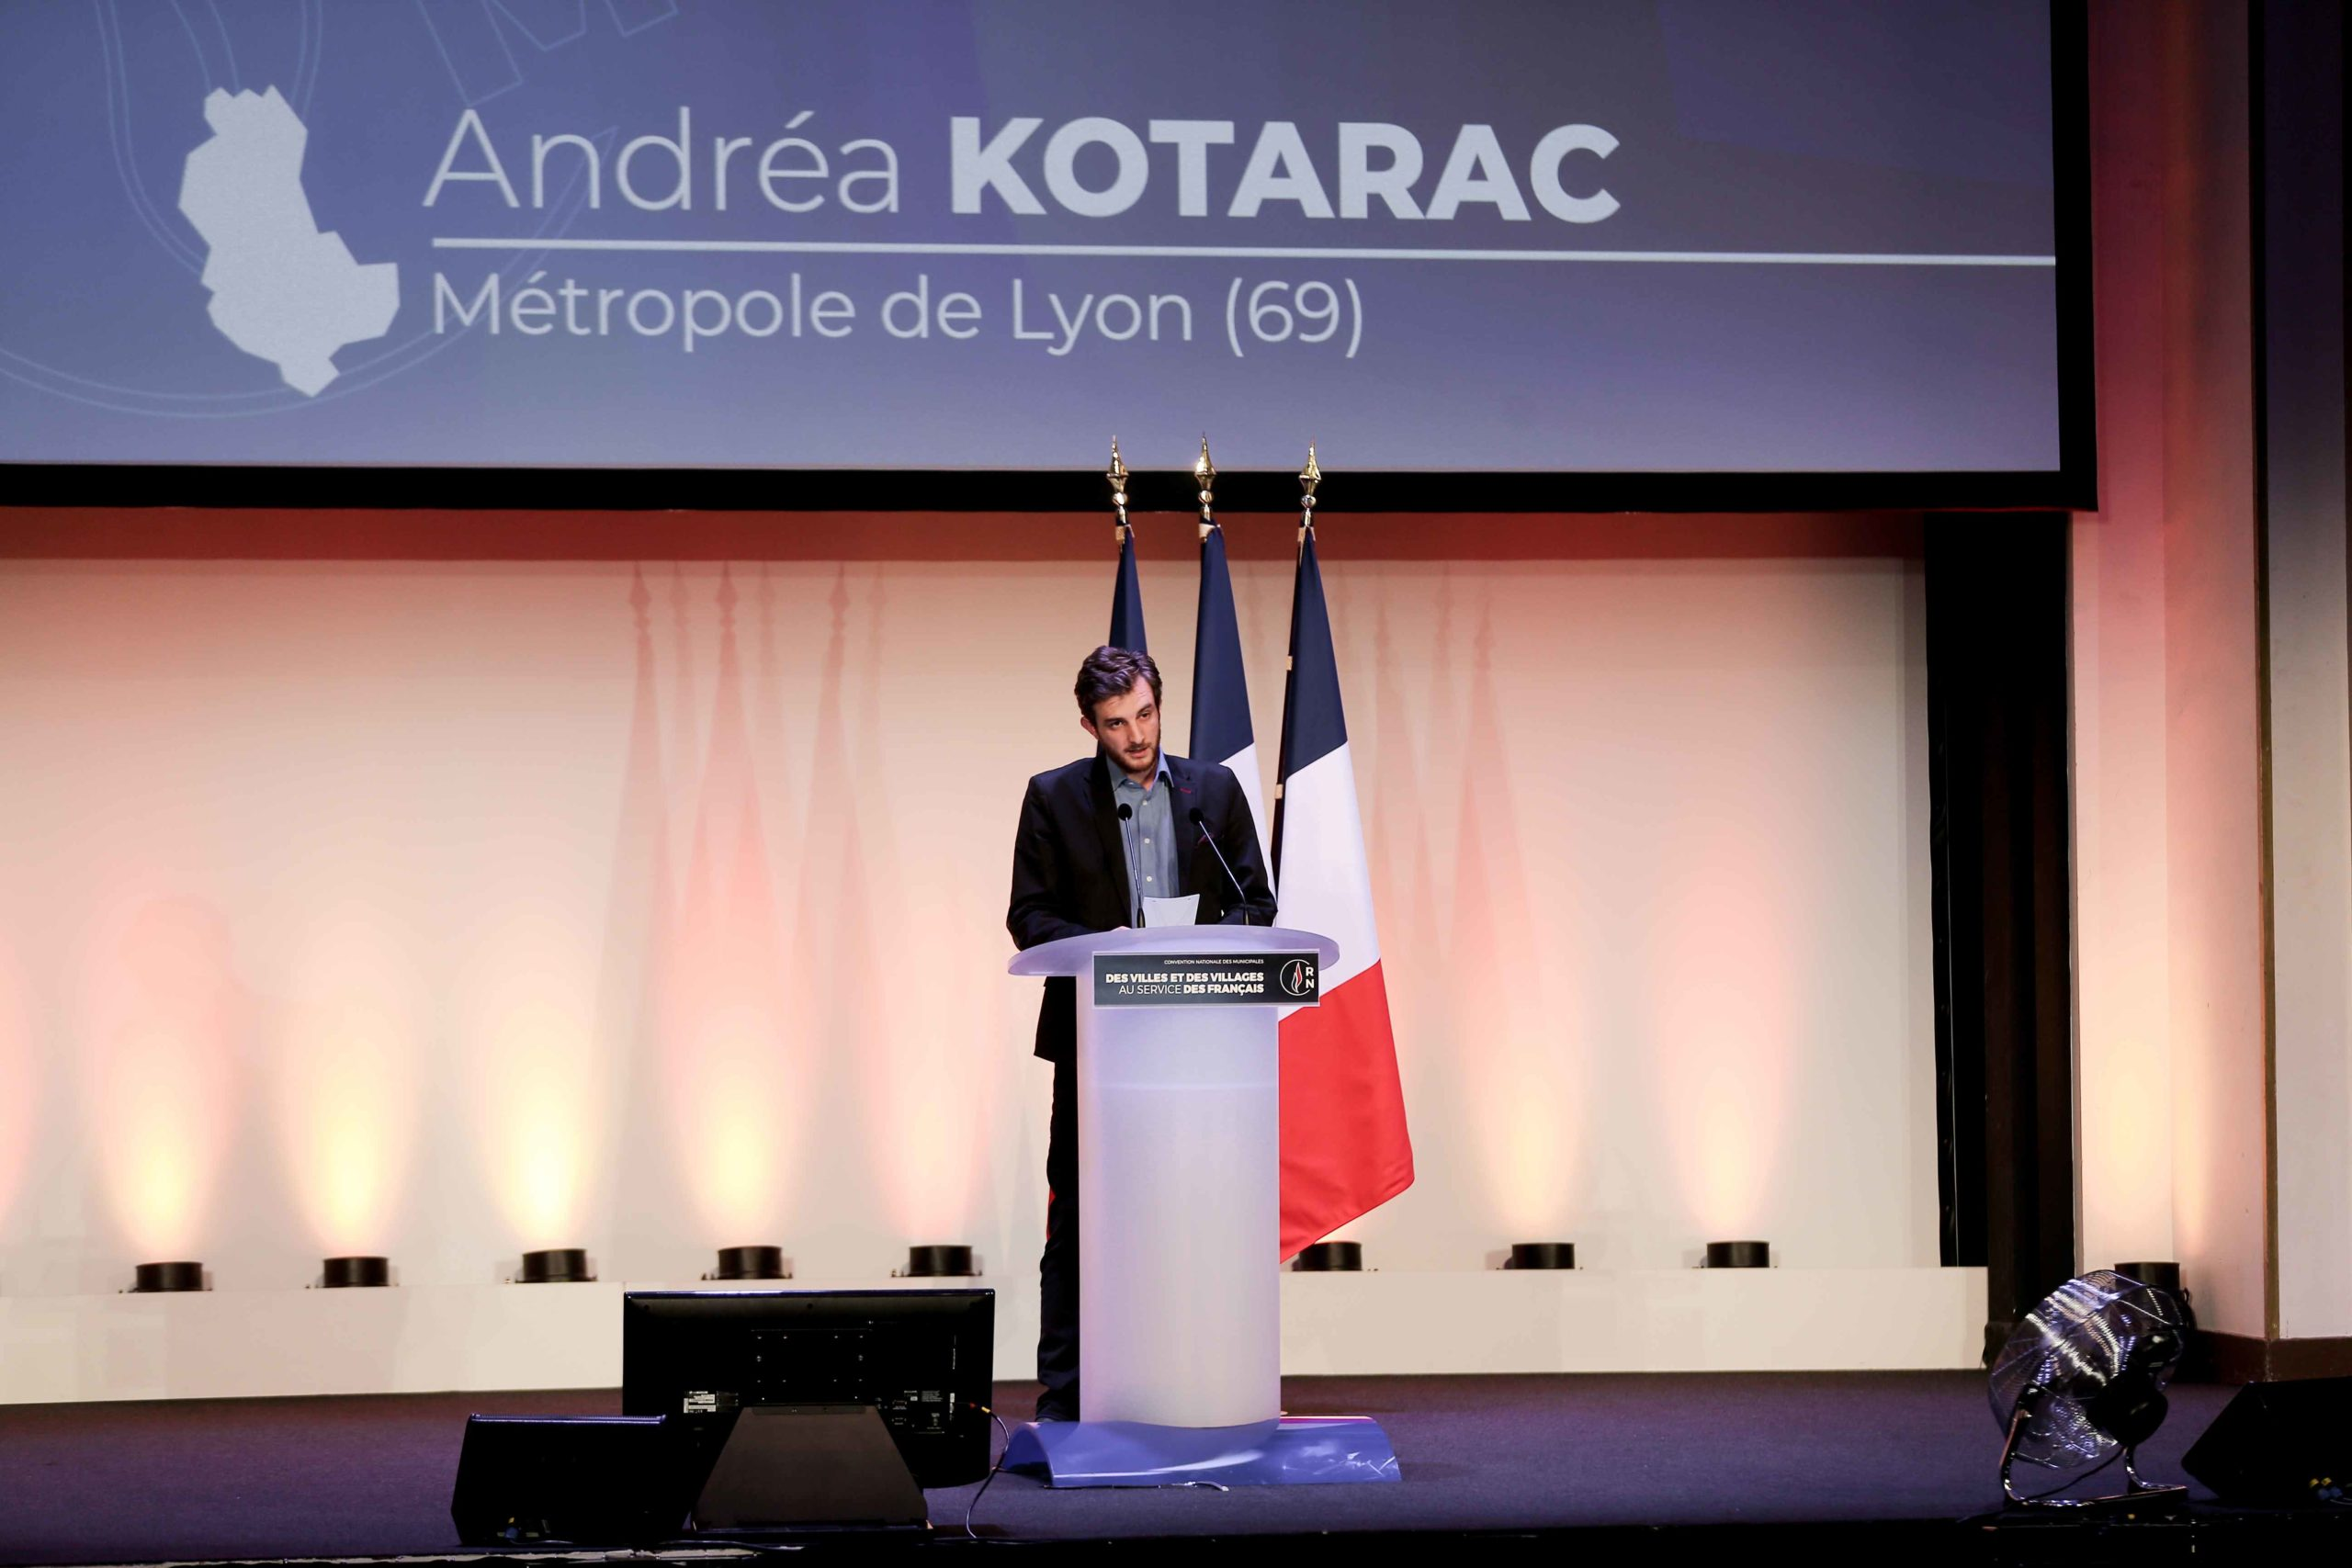 Andréa Kotarac, the Rassemblement national (RN) candidate in the forthcoming mayoral election in Lyon (Rhône), speaks in Paris, on January 12, 2020, during a meeting to launch the RN campaign candidates for the next municipal elections.  The 2020 French